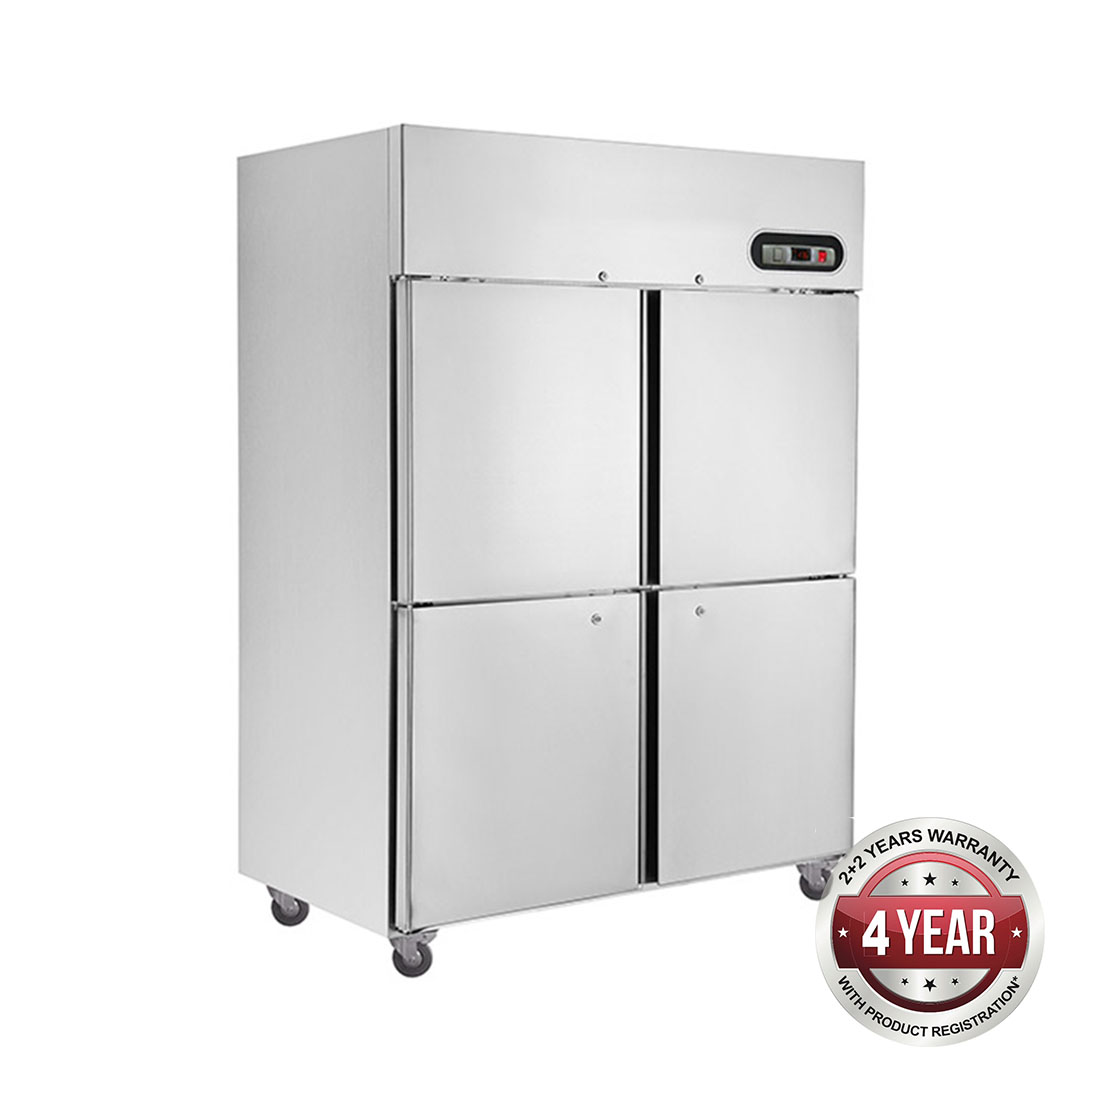 SUC1000 TROPICAL Thermaster 4 x ½ door SS Fridge